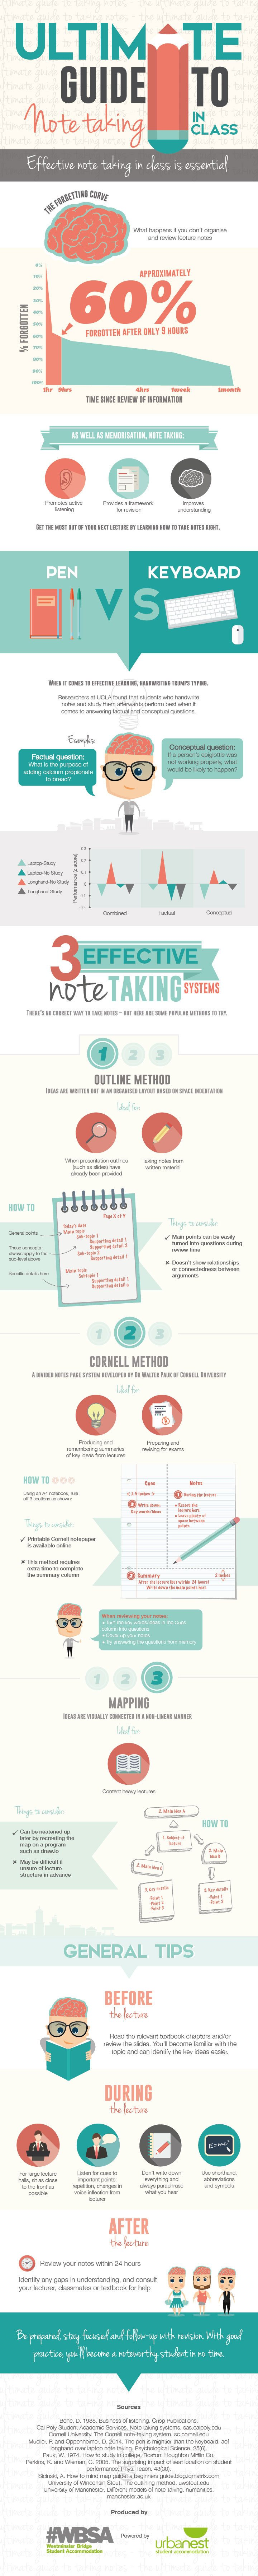 The Ultimate Guide to Note Taking in Class Infographic